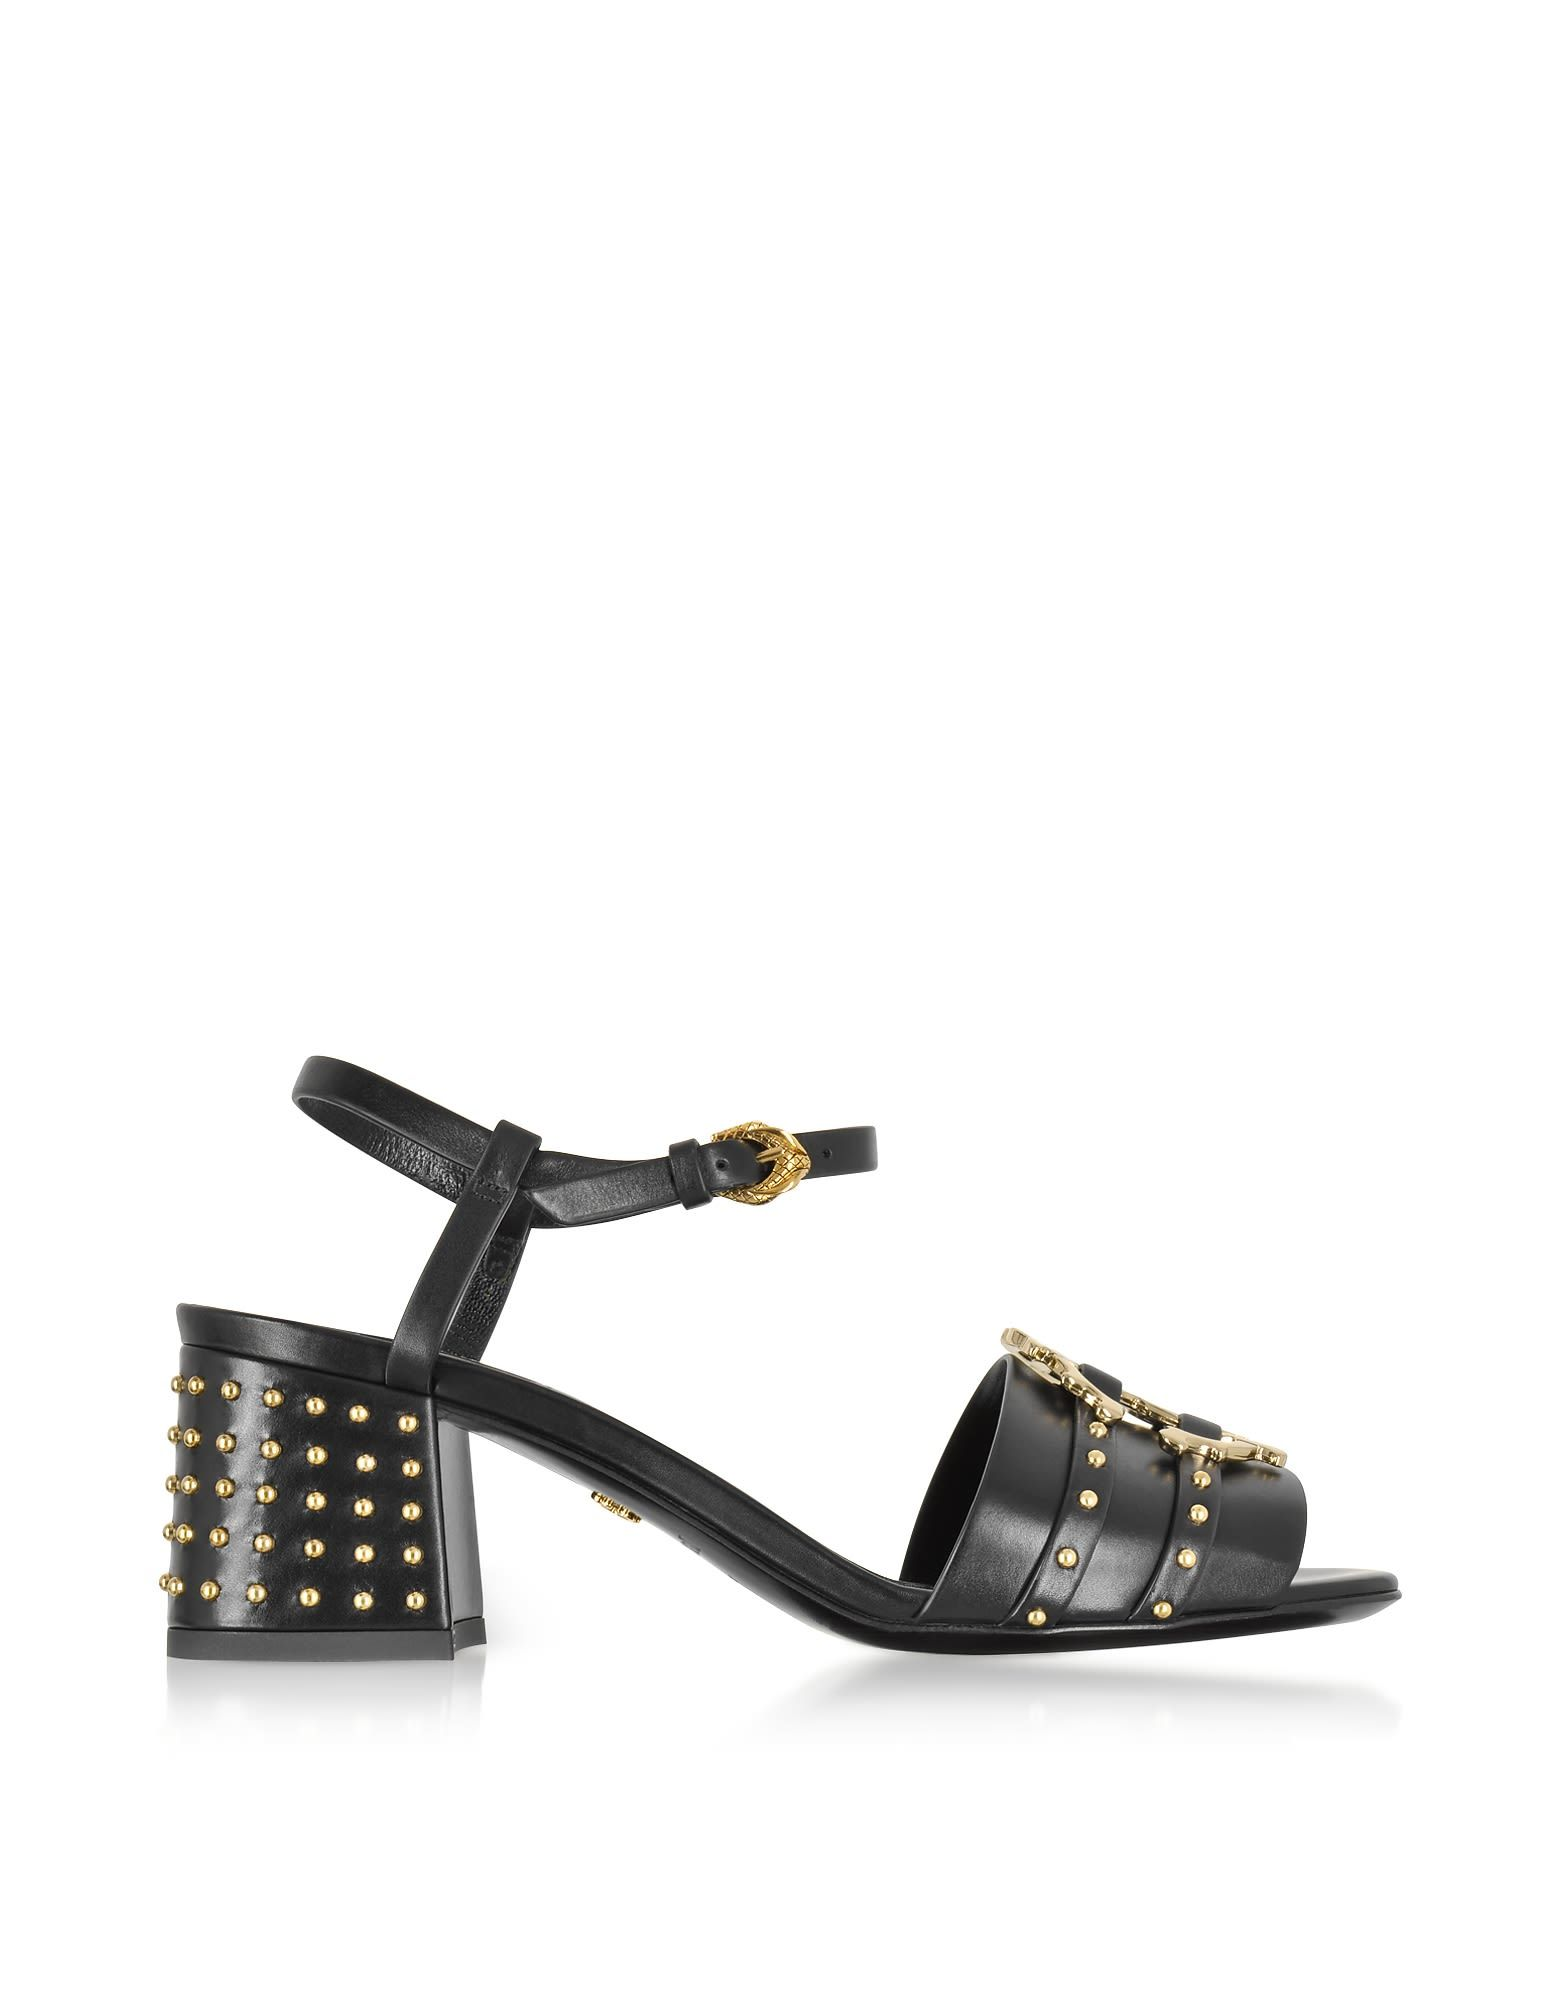 ROBERTO CAVALLI | Roberto Cavalli Roberto Cavalli Black Leather Studded  Sandals #Shoes #Sandals #